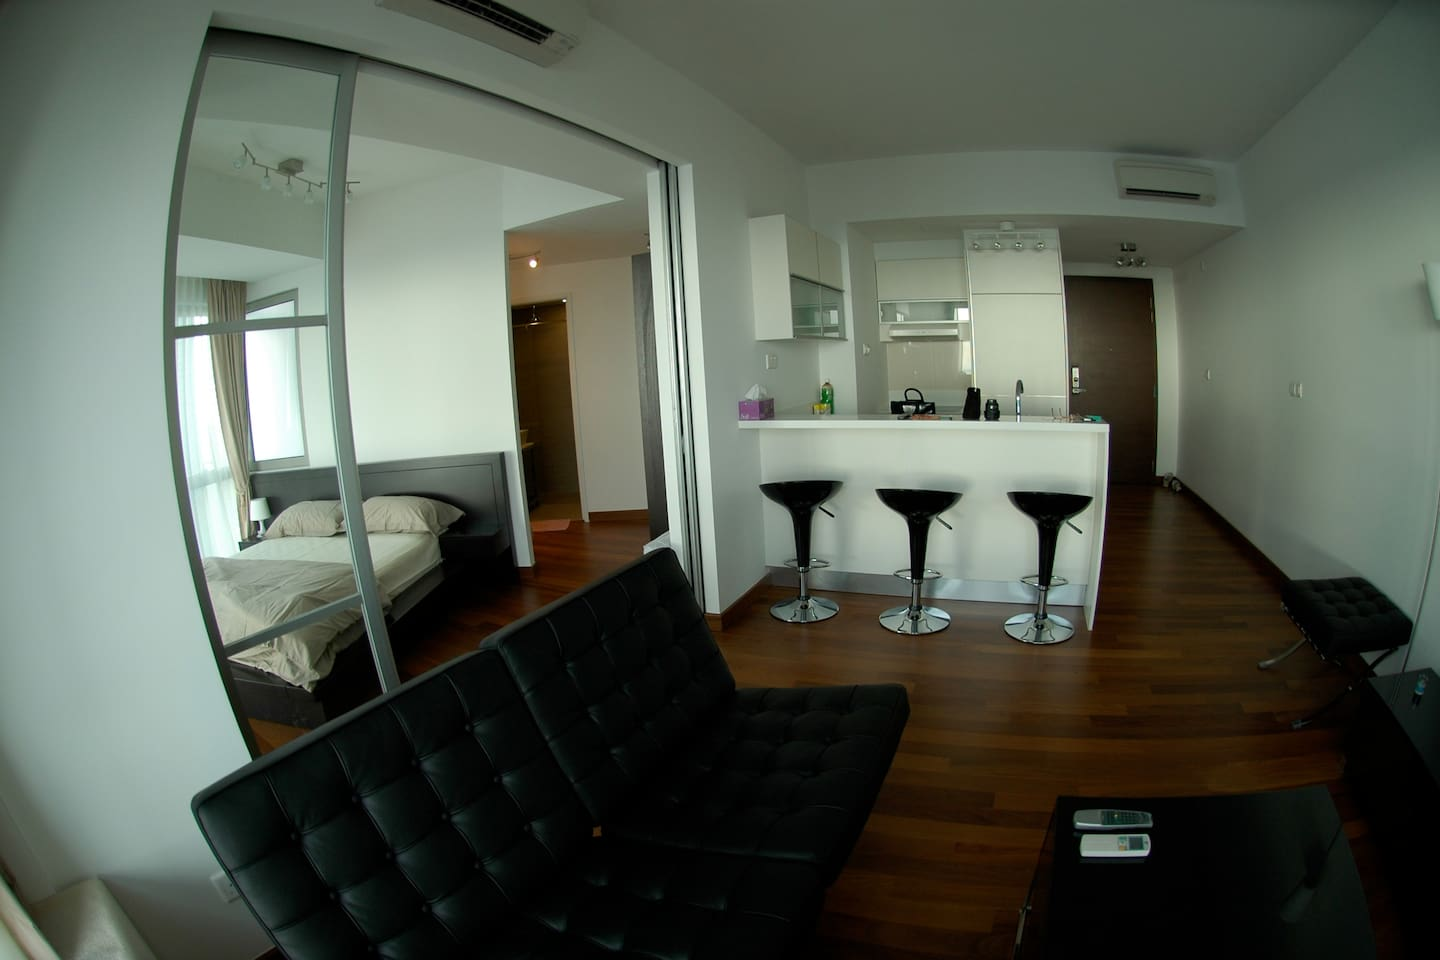 Separate Private Bed Room & Living Room With Bar Counter & Full Entertainment System & Cable TV